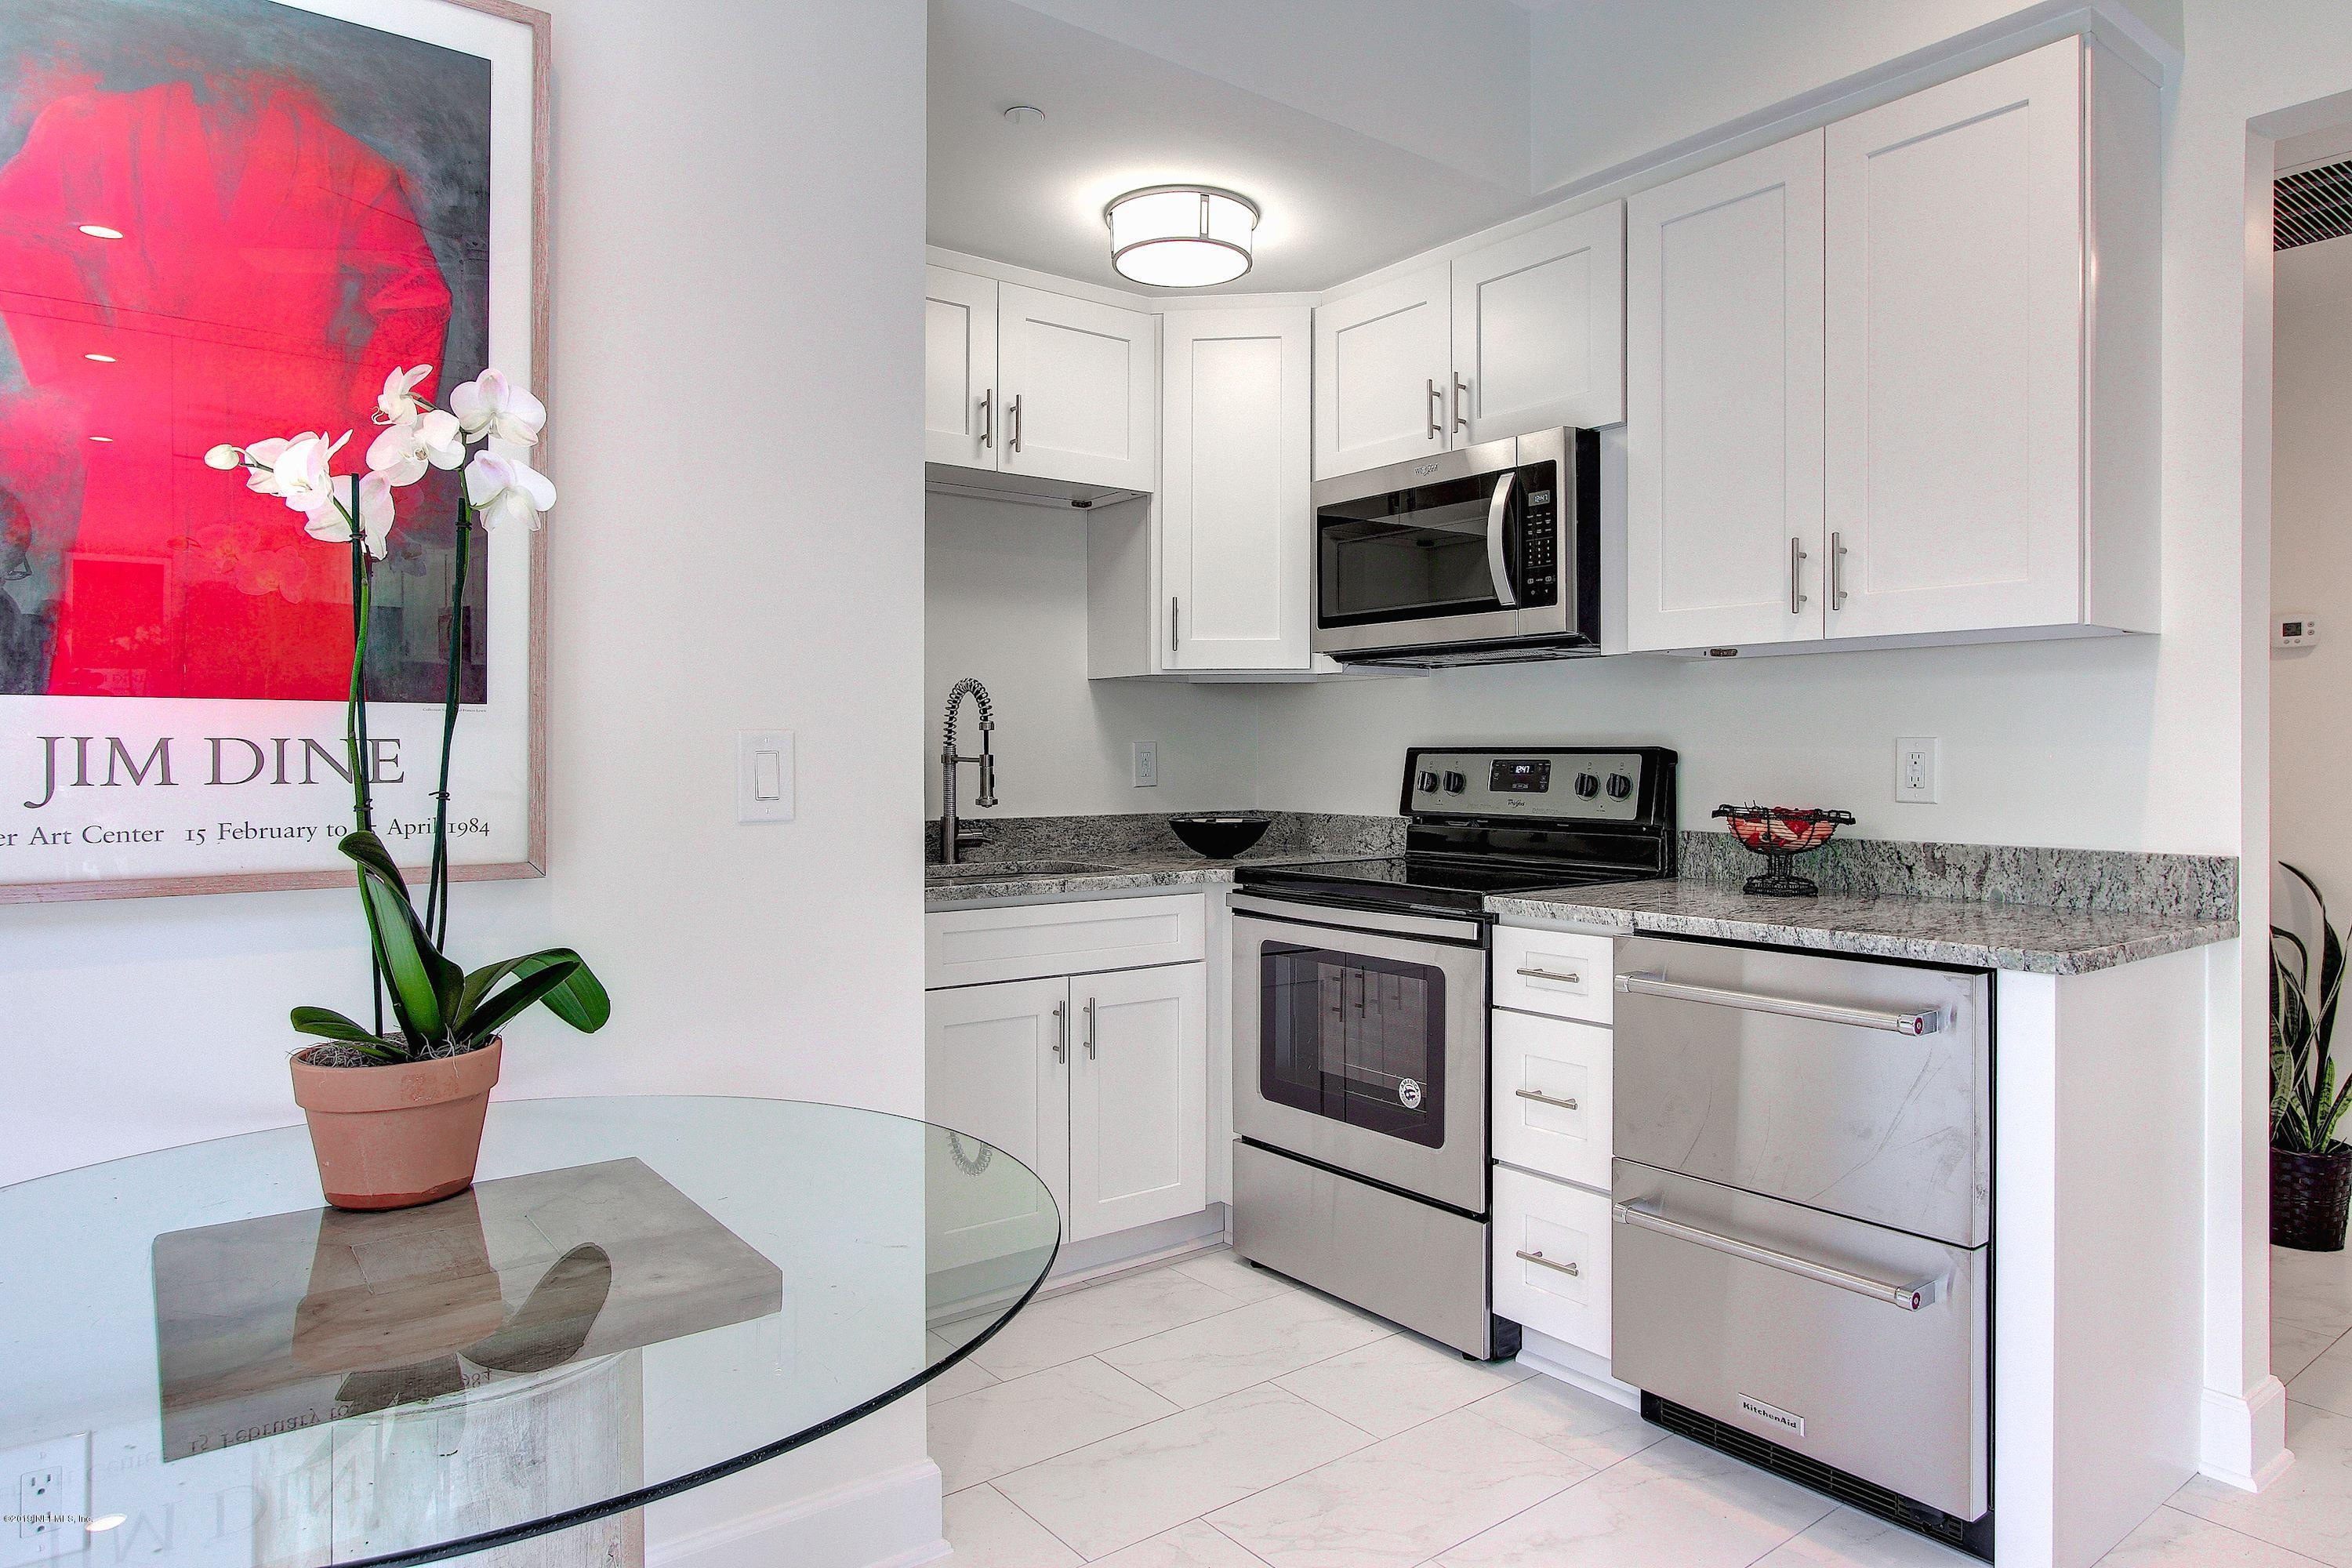 1560 LANCASTER, JACKSONVILLE, FLORIDA 32204, 1 Bedroom Bedrooms, ,1 BathroomBathrooms,Residential - condos/townhomes,For sale,LANCASTER,977299